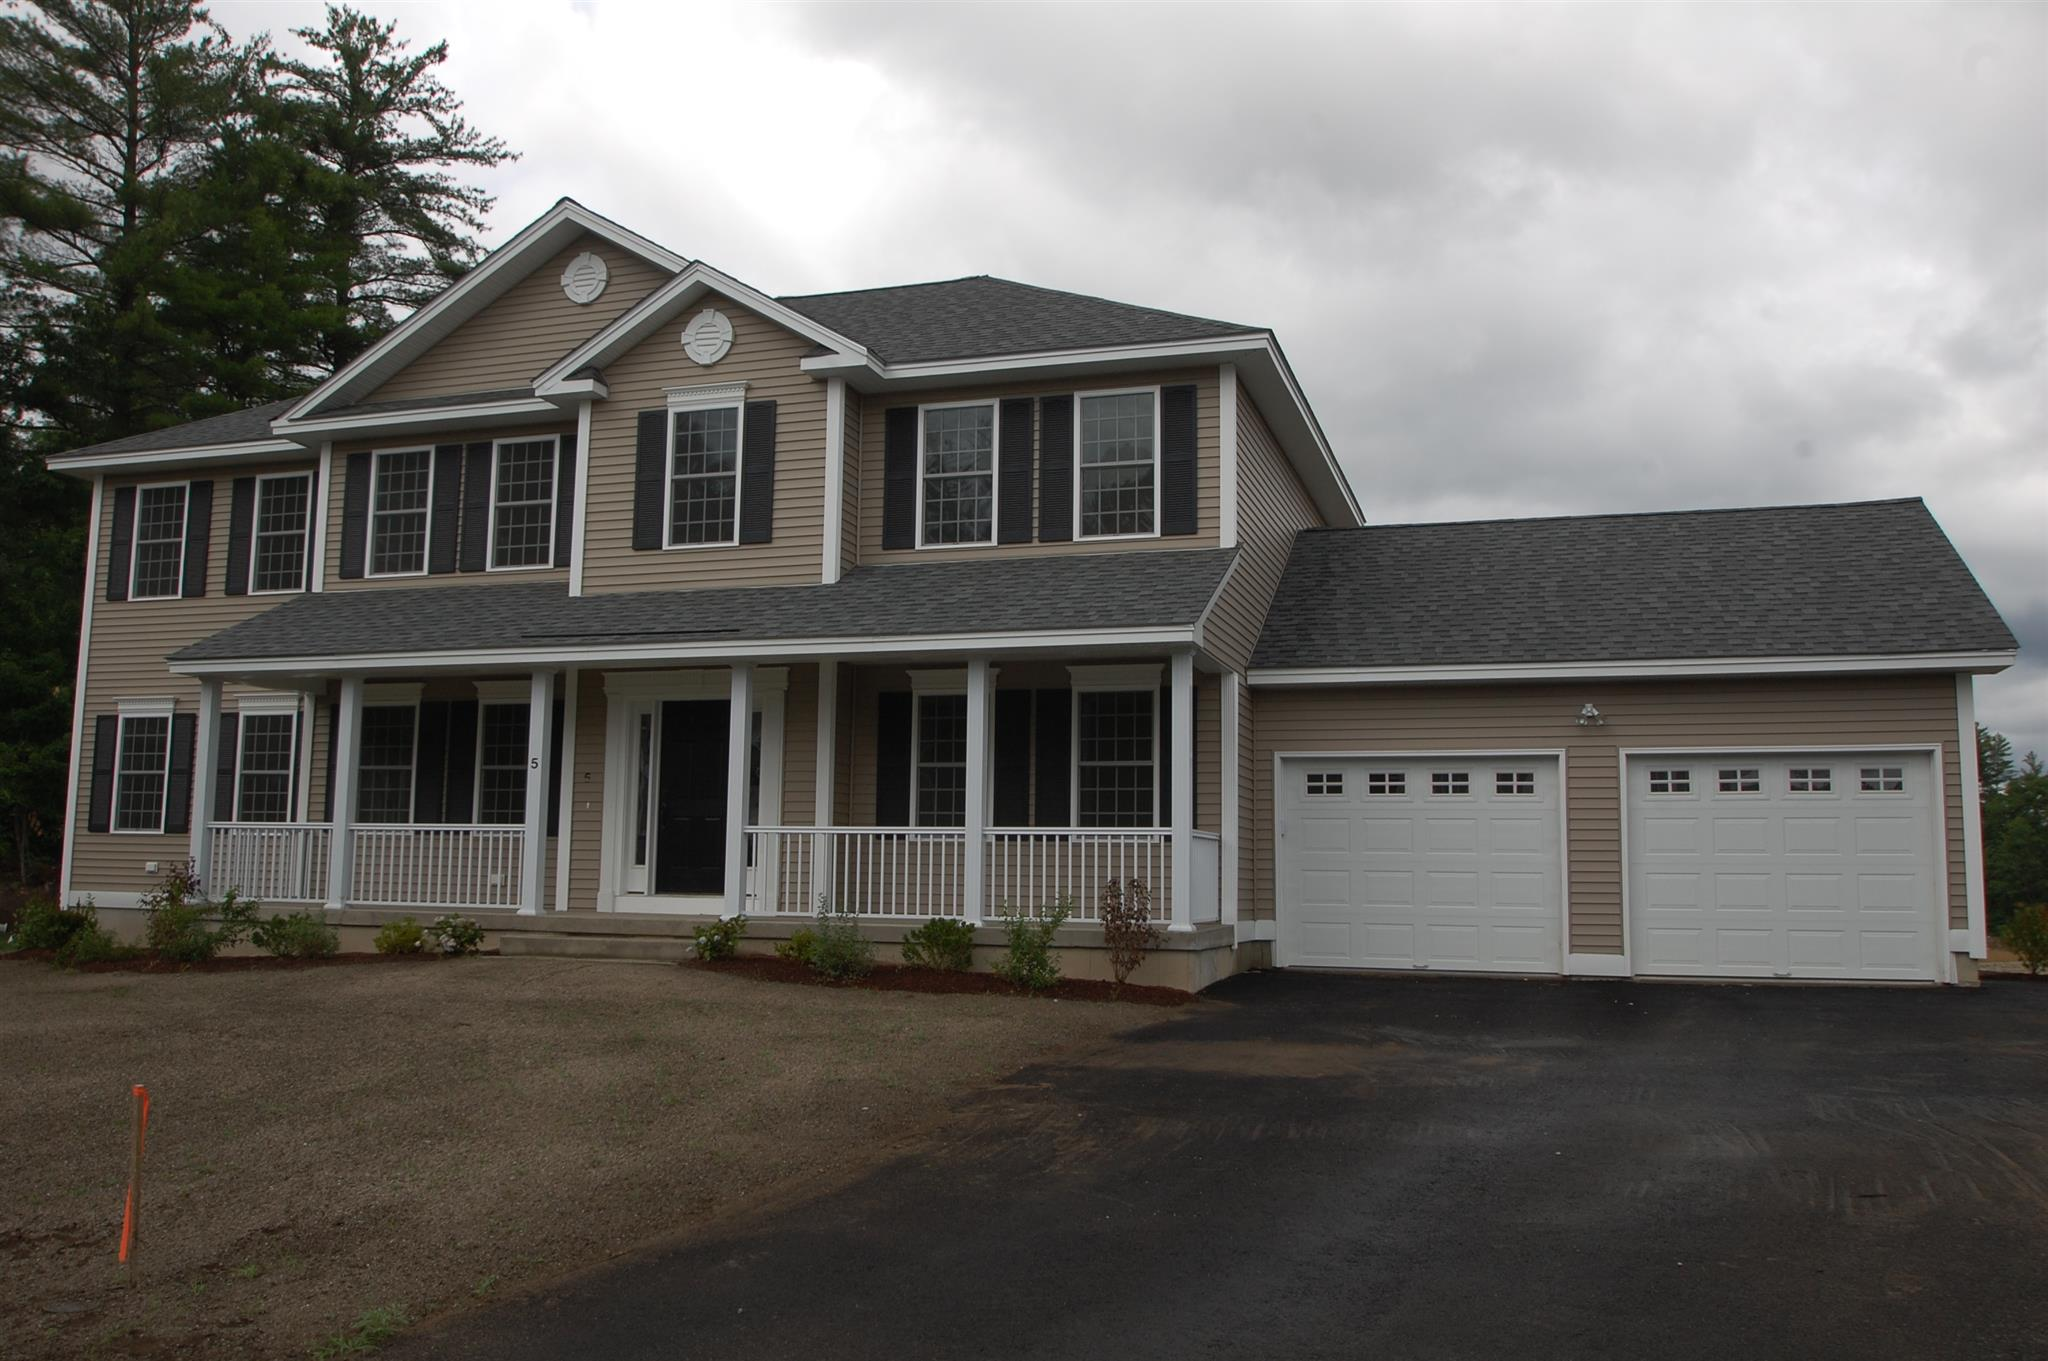 MLS 4789249: 5 Baldwin Court-Unit 60, Merrimack NH